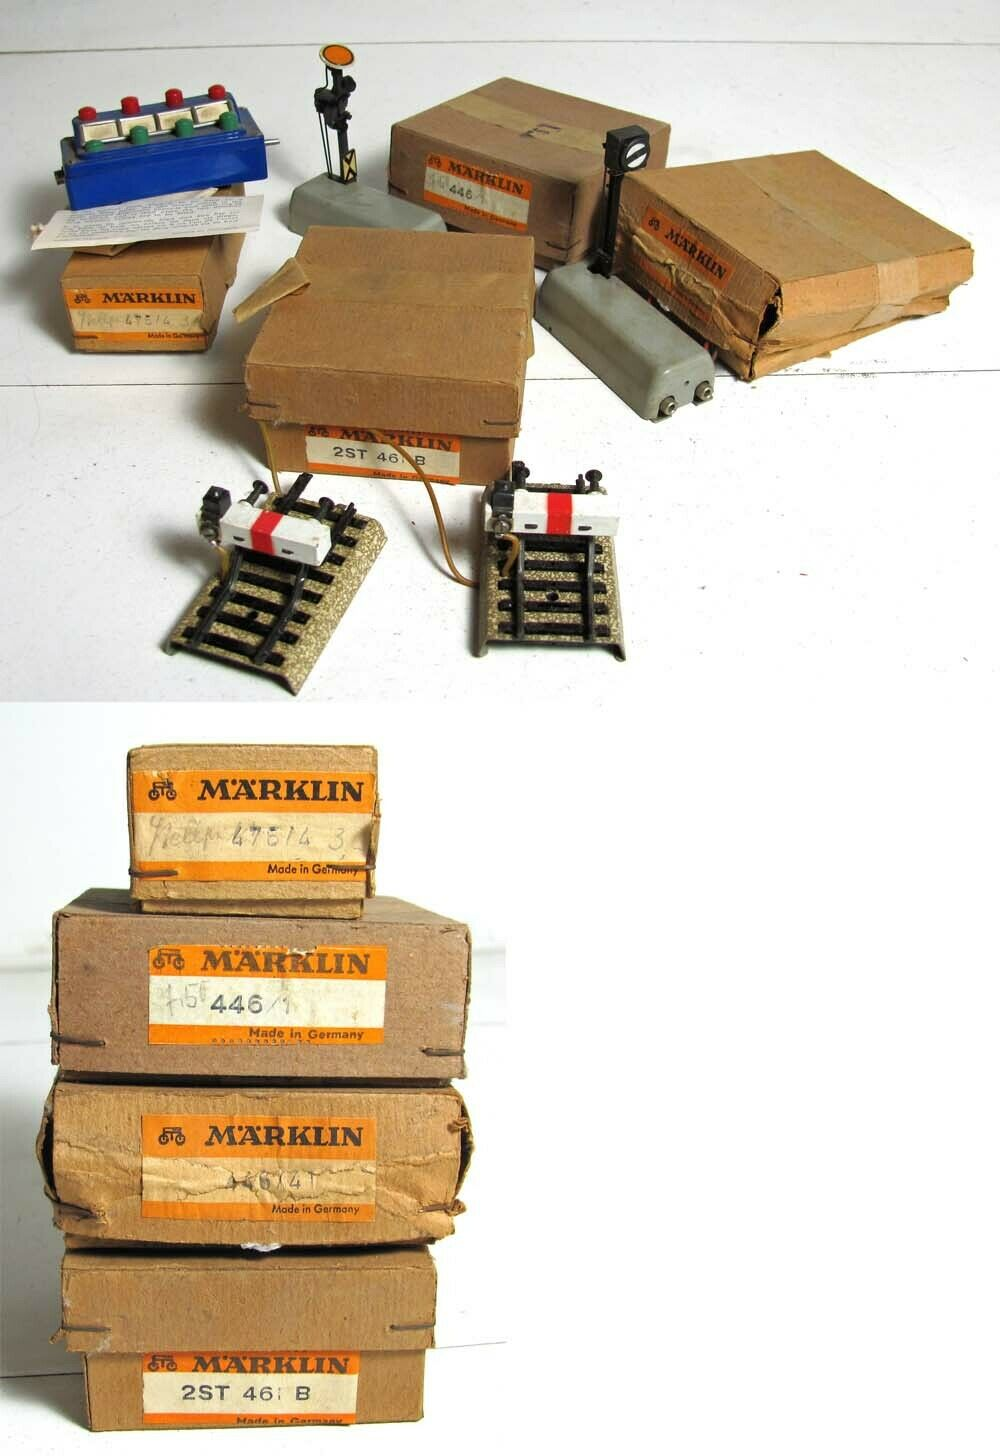 MARKLIN HO GAUGE 461B BUMPERS, 446 1 446 41 SIGNAL, AND 476 4 CONTROL PANEL